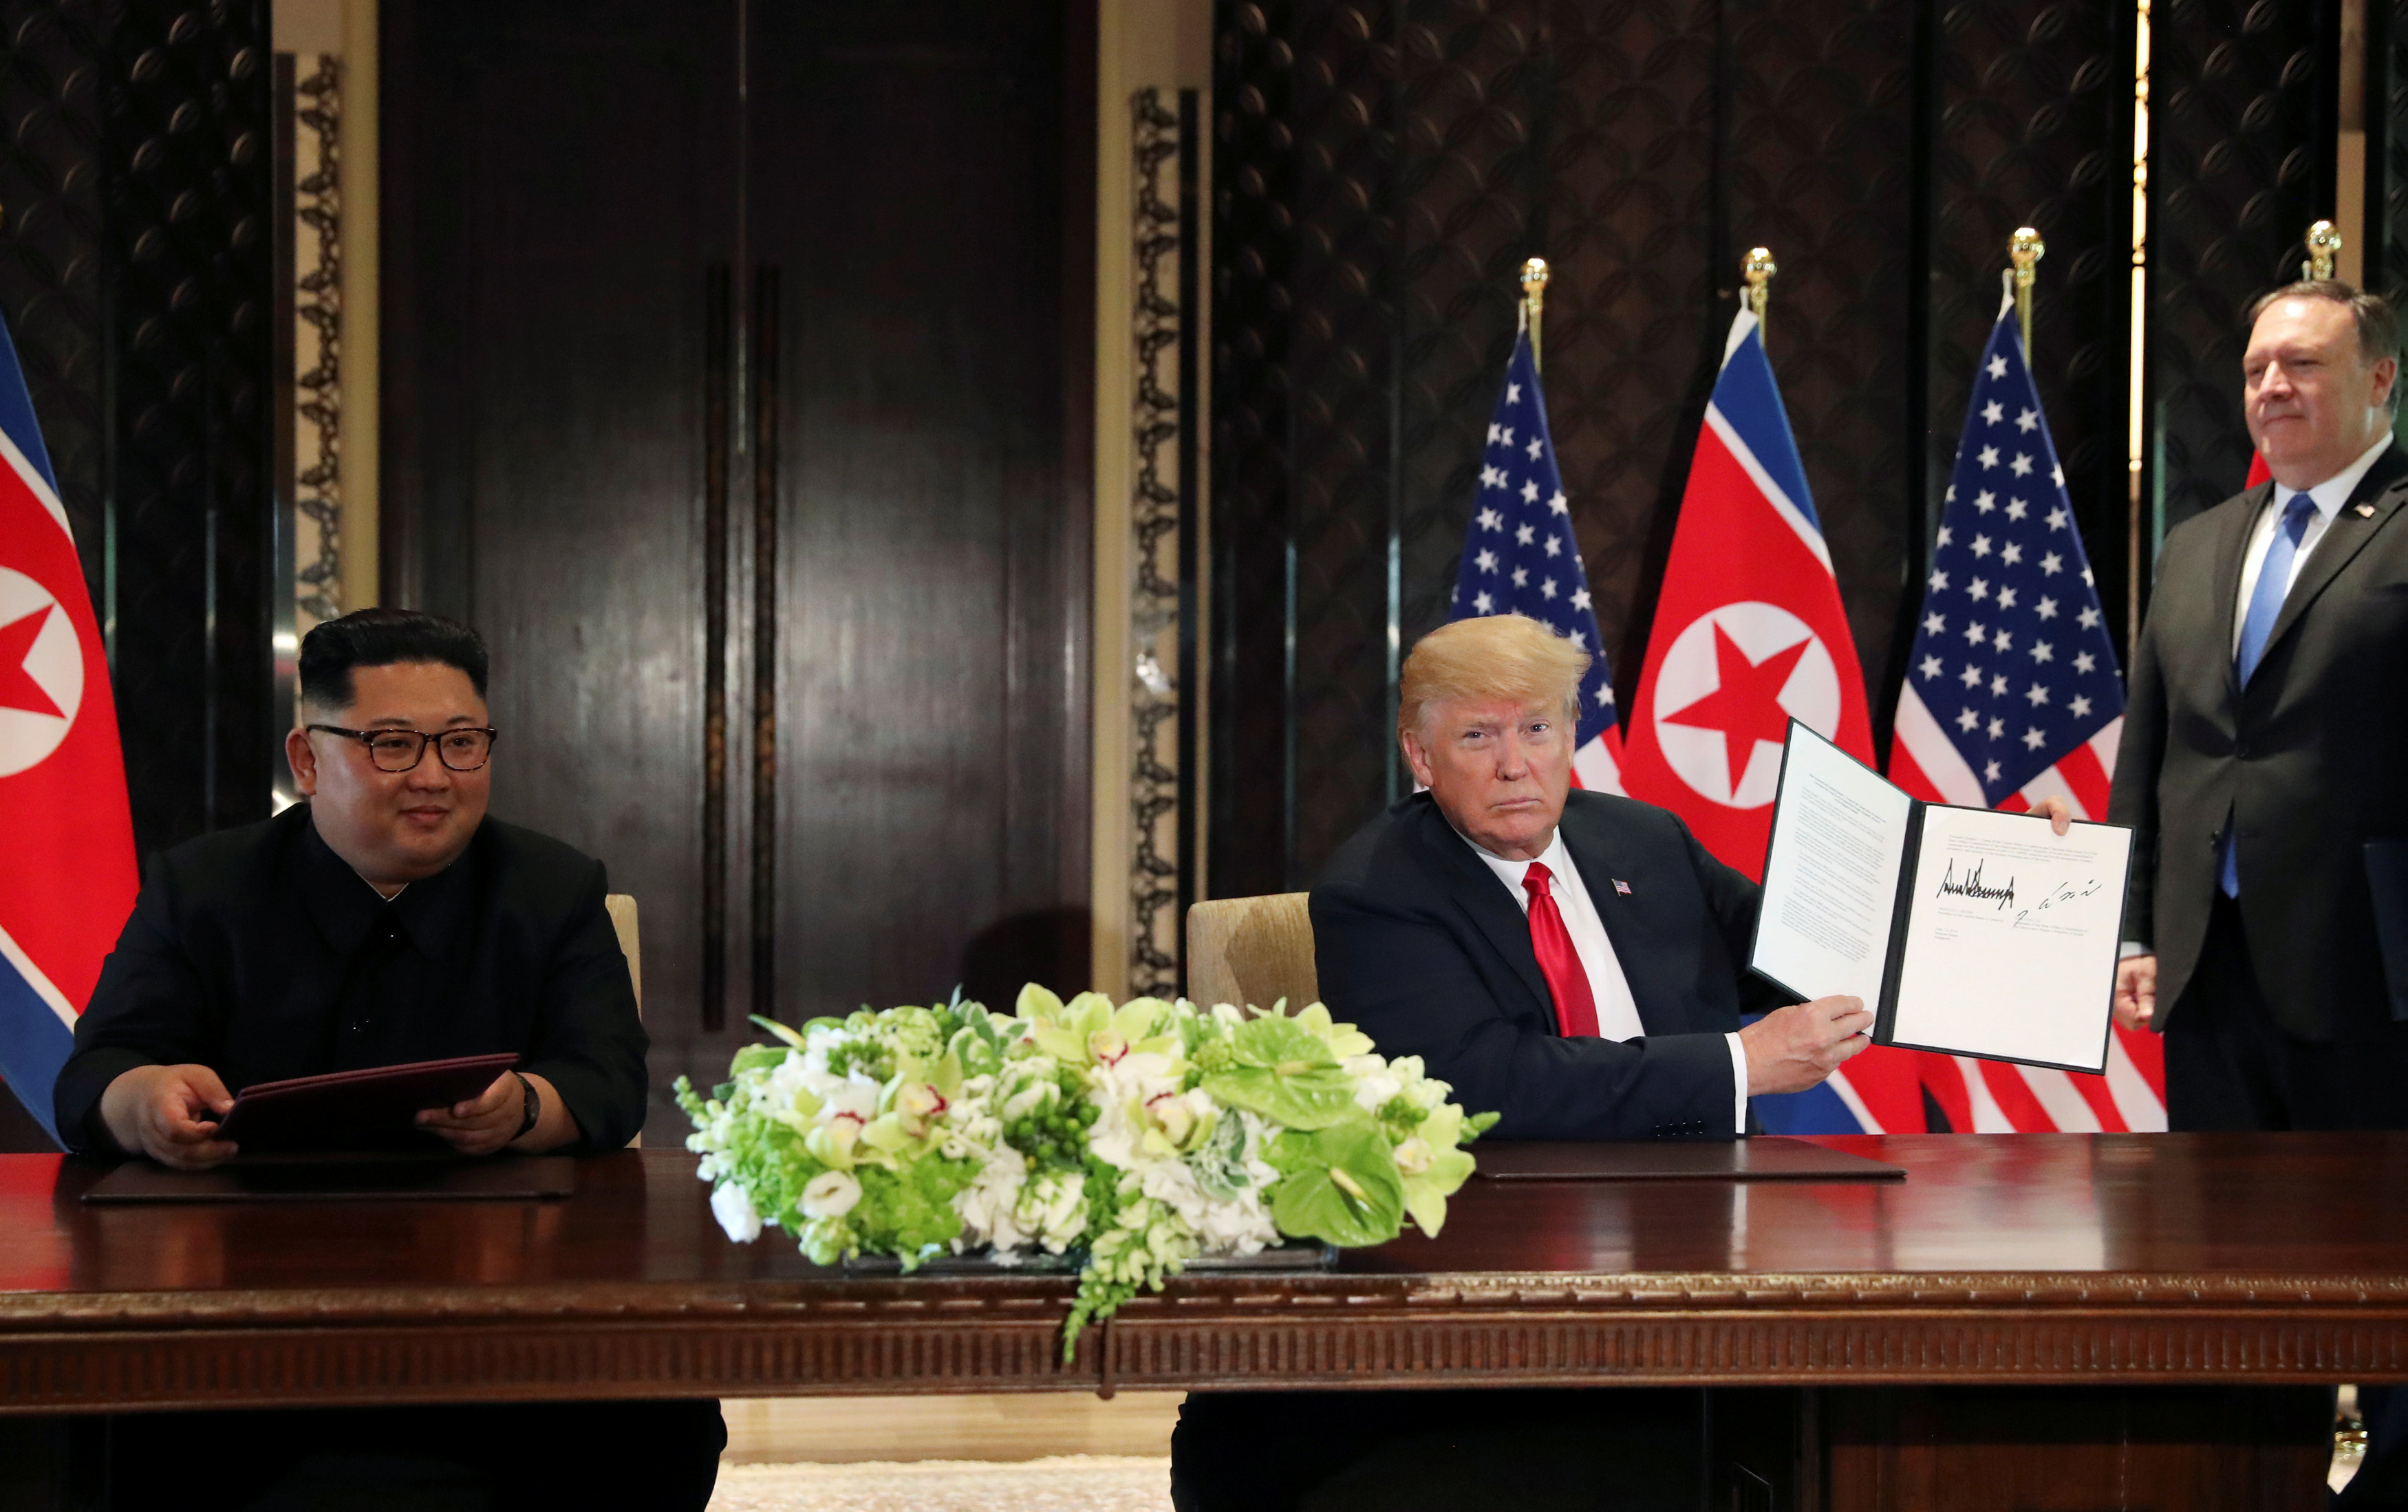 FILE PHOTO: U.S. President Donald Trump shows the document, that he and North Korea's leader Kim Jong Un signed acknowledging the progress of the talks and pledge to keep momentum going, after their summit at the Capella Hotel on Sentosa island in Singapore June 12, 2018. At right is U.S. Secretary of State Mike Pompeo. REUTERS/Jonathan Ernst/File Photo